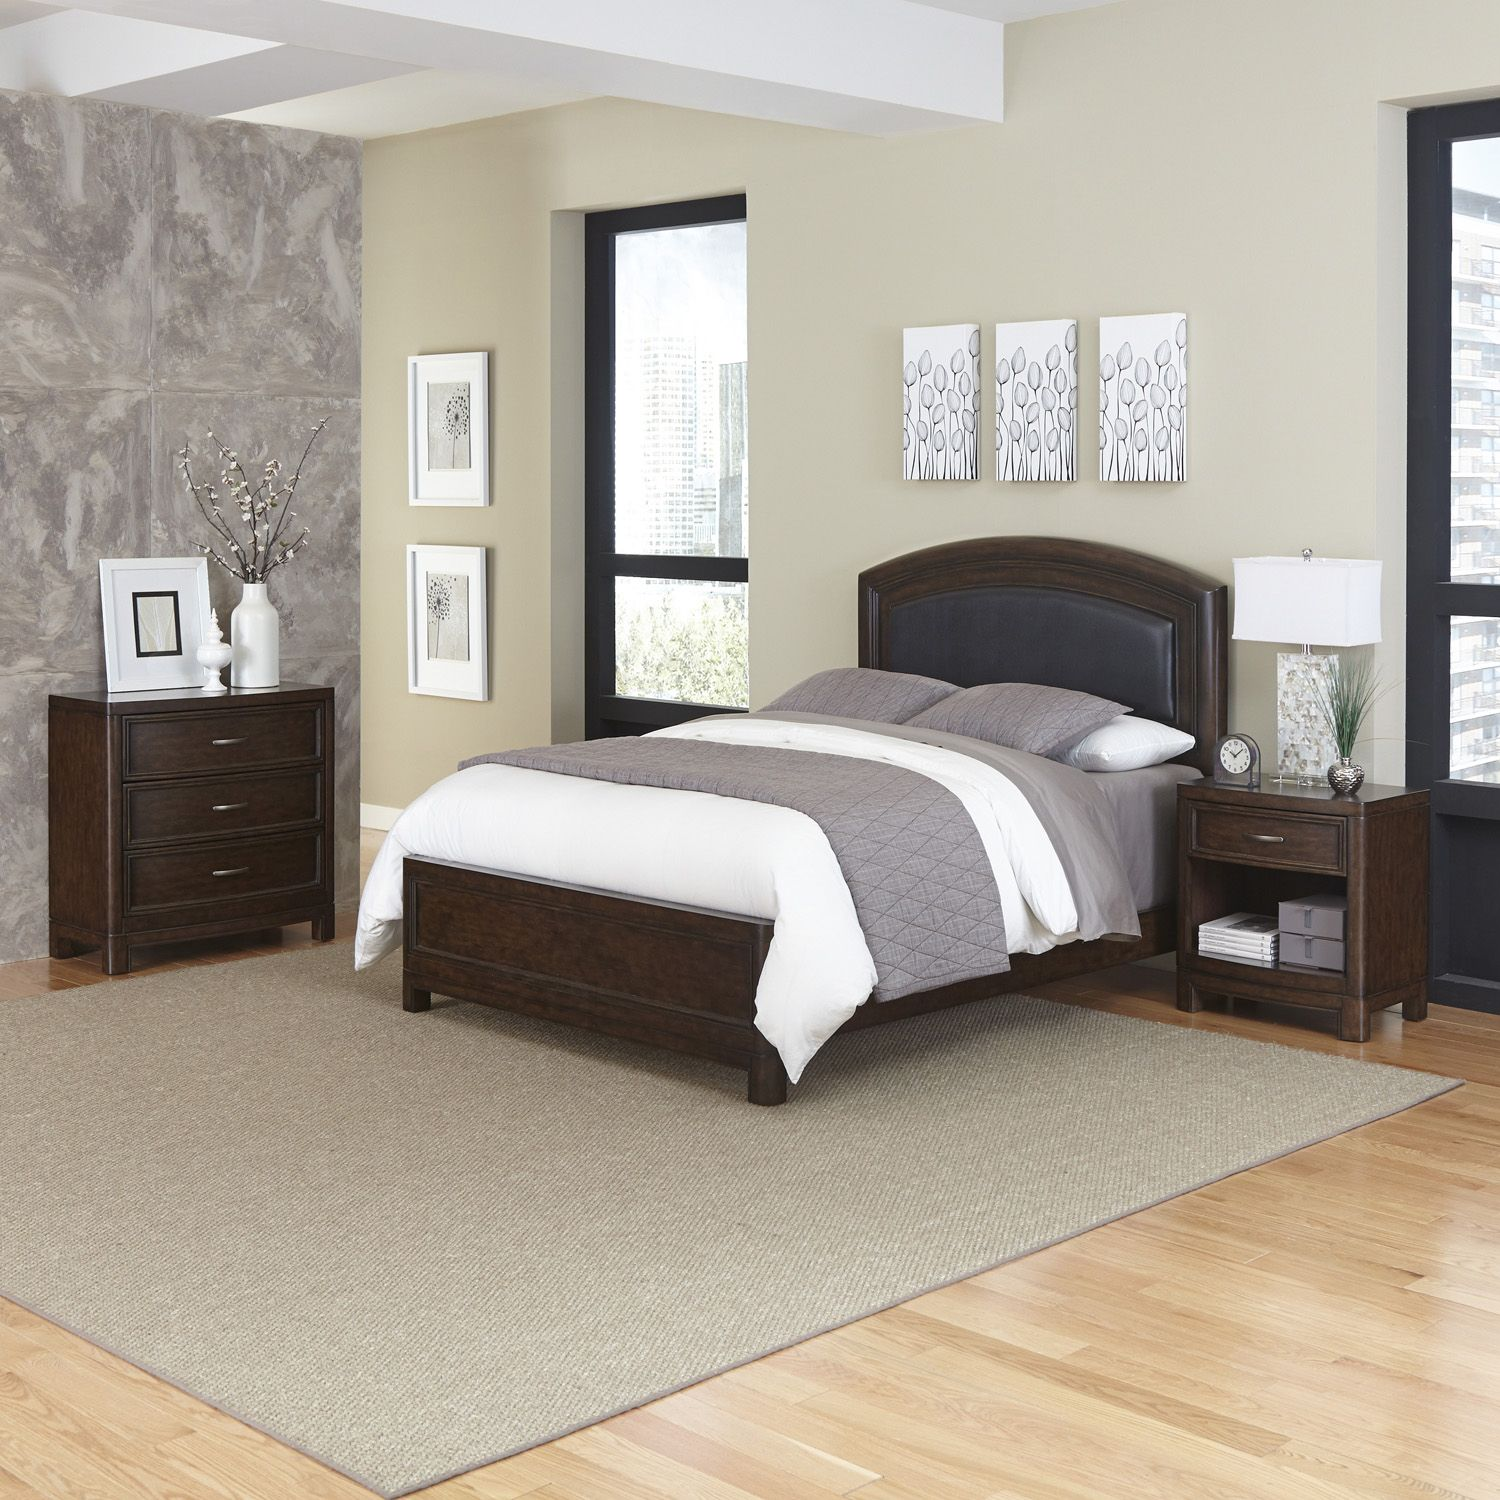 Fancy Home Styles Crescent Hill piece Leather Upholstered Bed Nightstand and Drawer Set